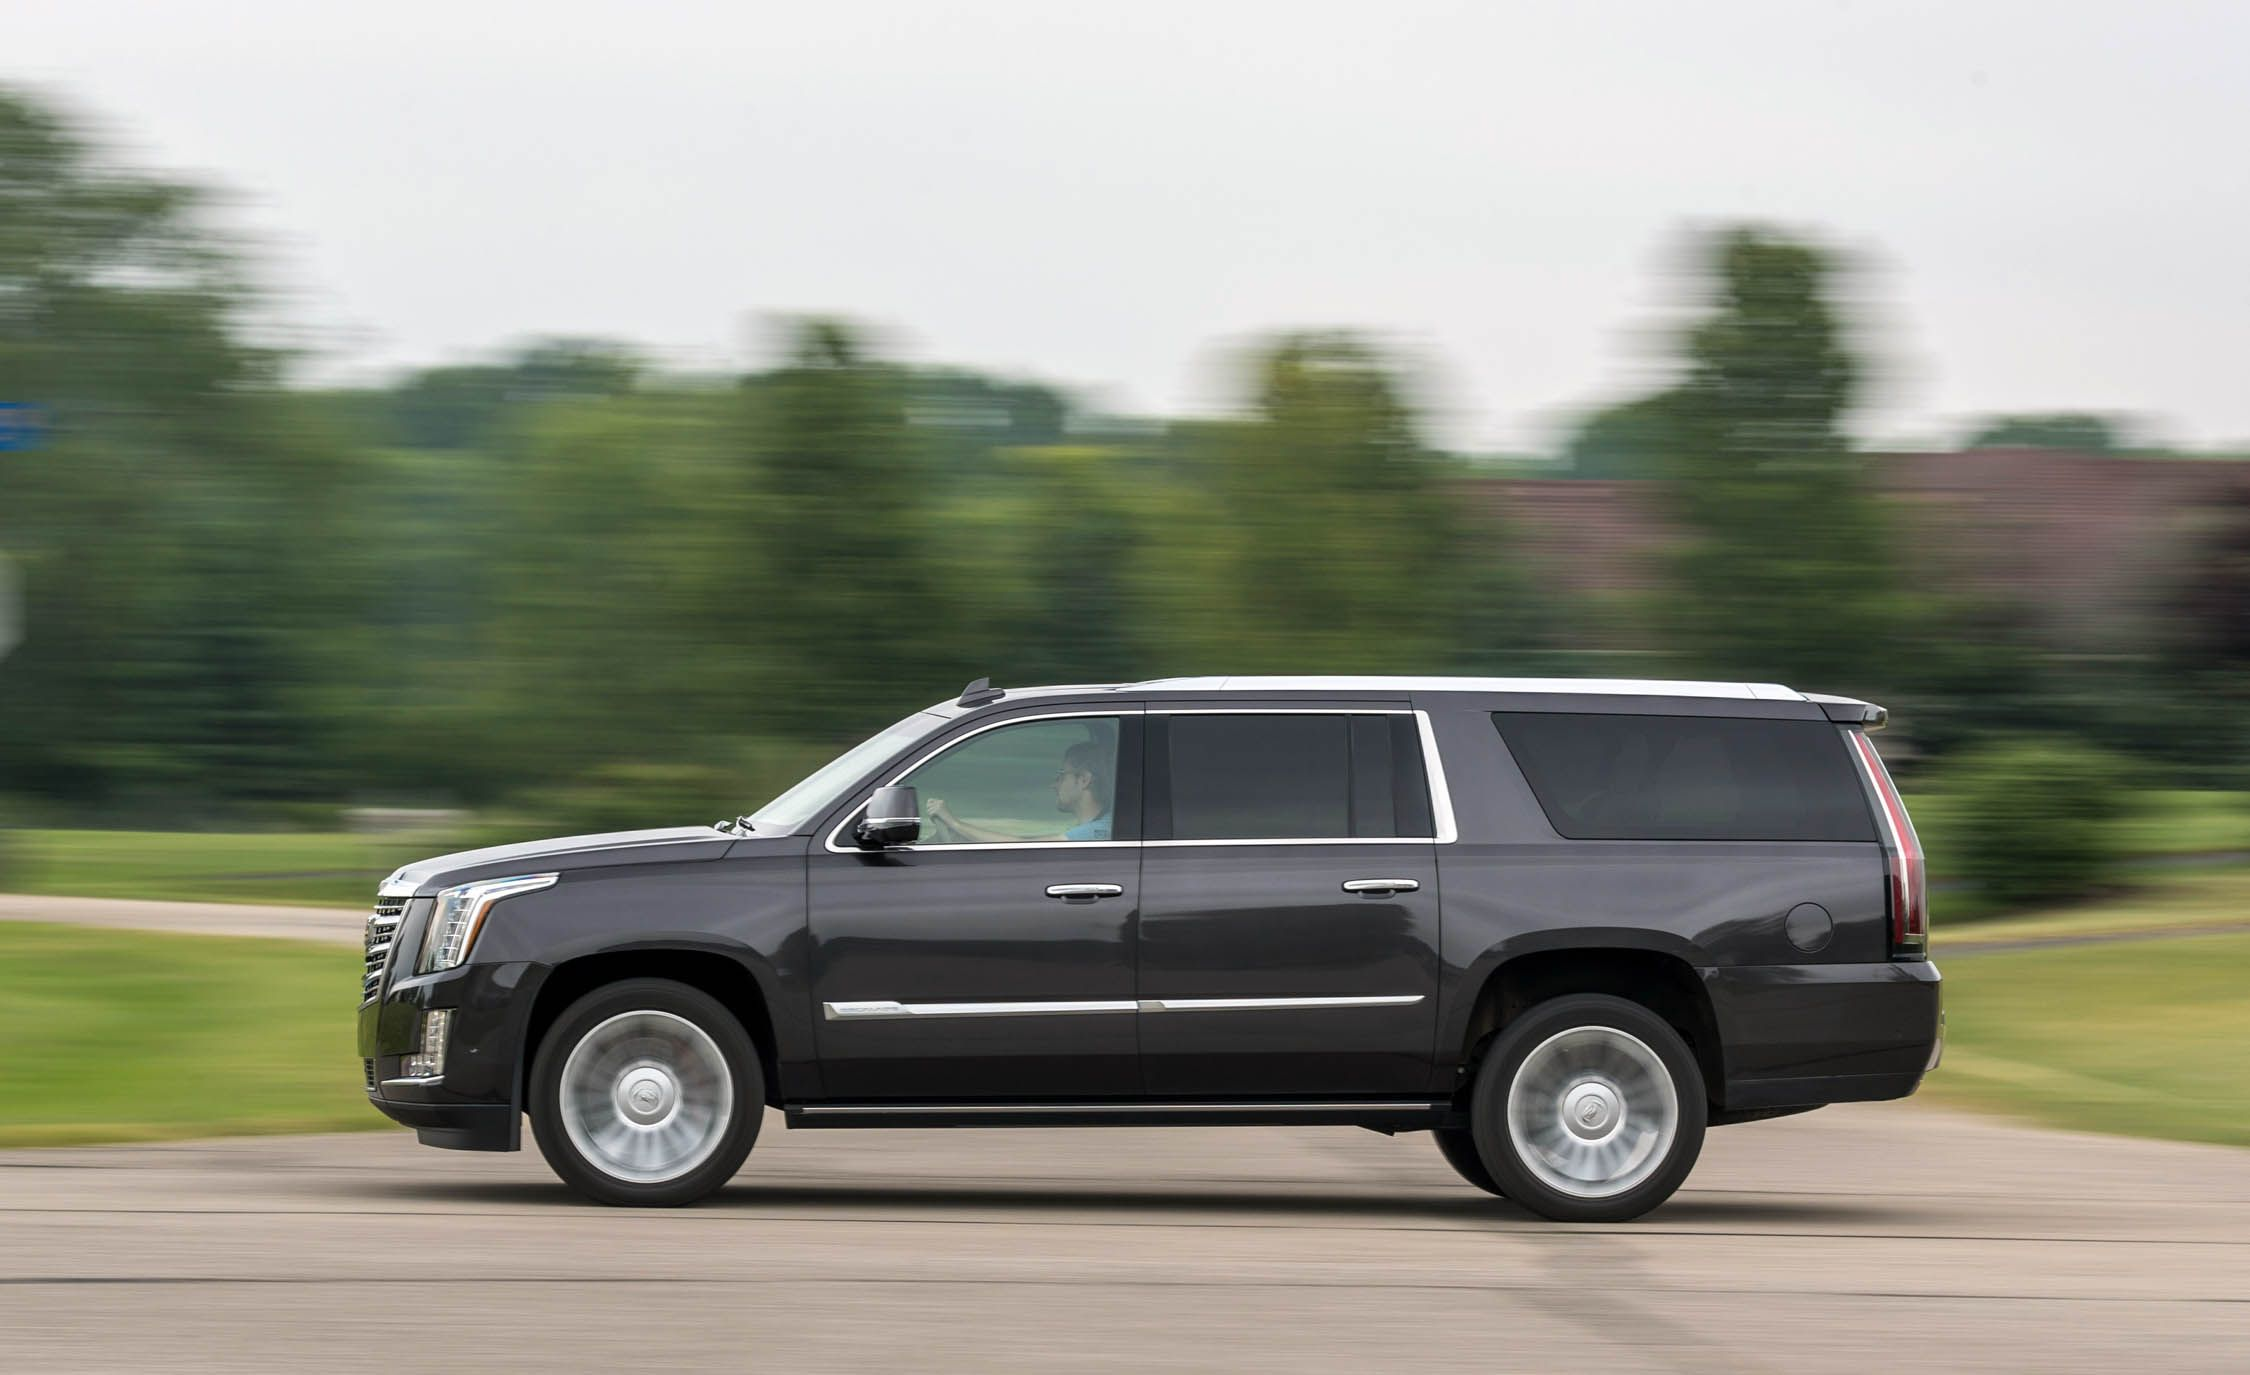 2018 cadillac escalade fuel economy and driving range review car and driver. Black Bedroom Furniture Sets. Home Design Ideas